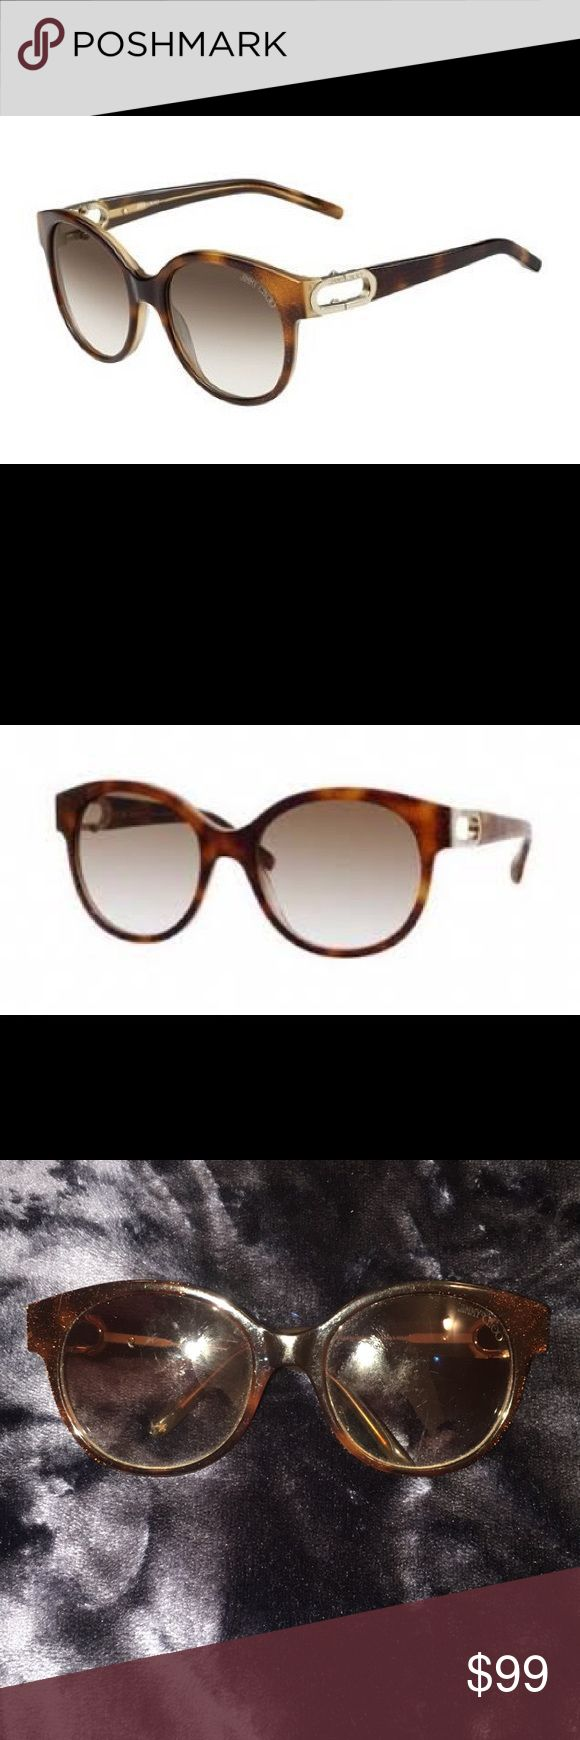 Jimmy Choo Allium Sunglasses Glitter Tortoise Jimmy Choo Allium Sunglasses in color M2R02.   Glitter tortoise color  Comes with Sunglasses, case, and box.  100% authentic.  Lenses and frame have signs of use and some light scratches Jimmy Choo Accessories Sunglasses